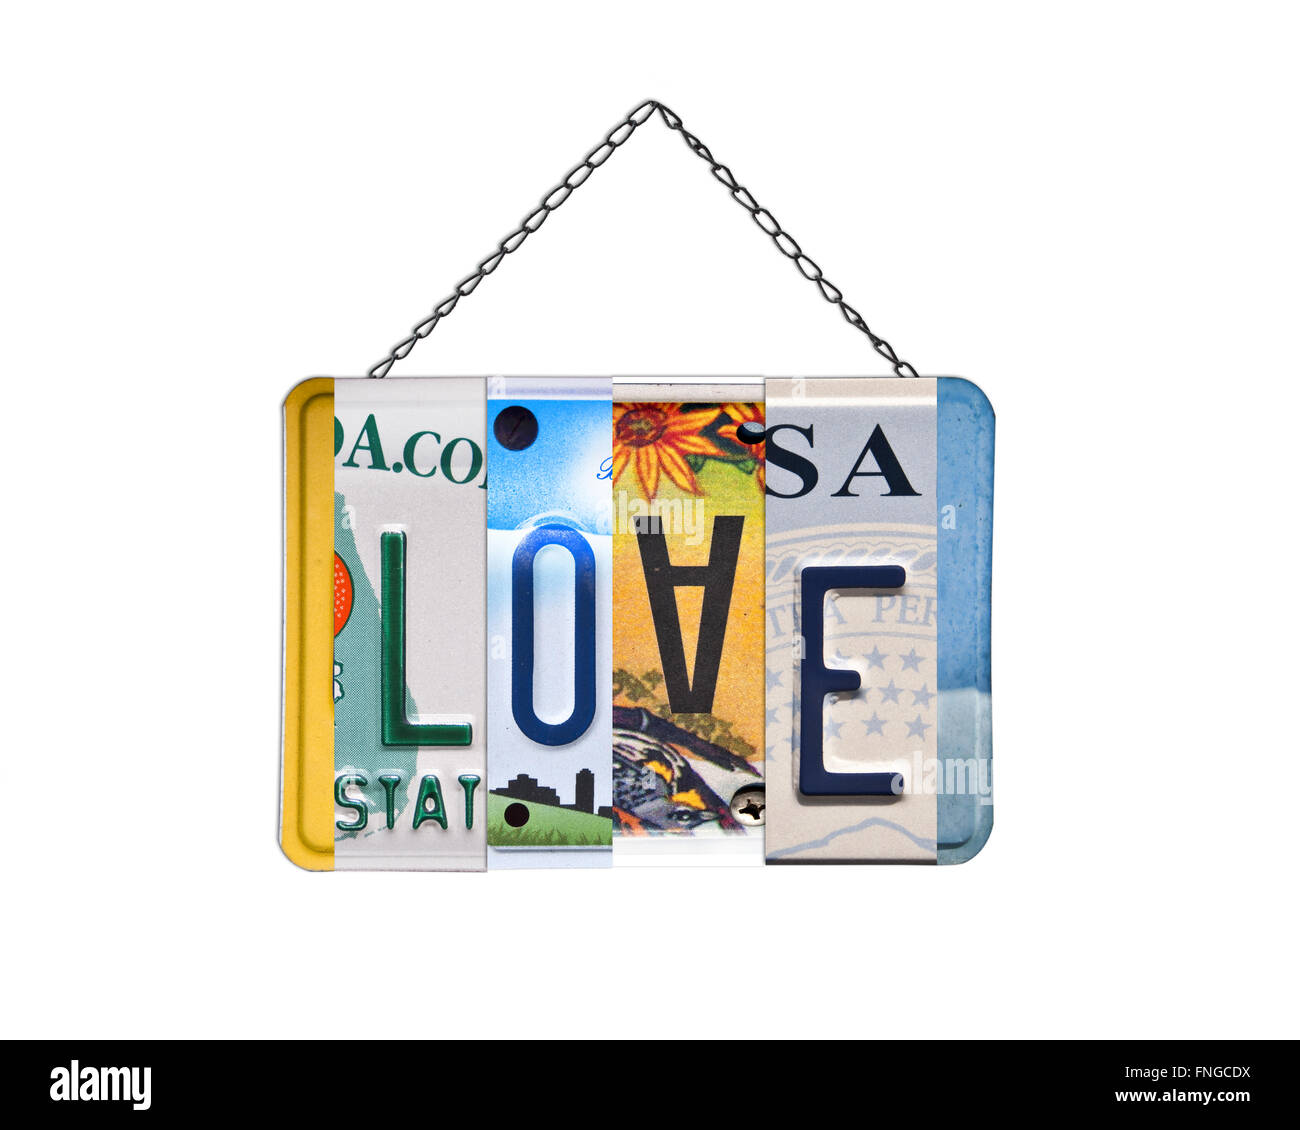 Us License Plate Stock Photos Amp Us License Plate Stock